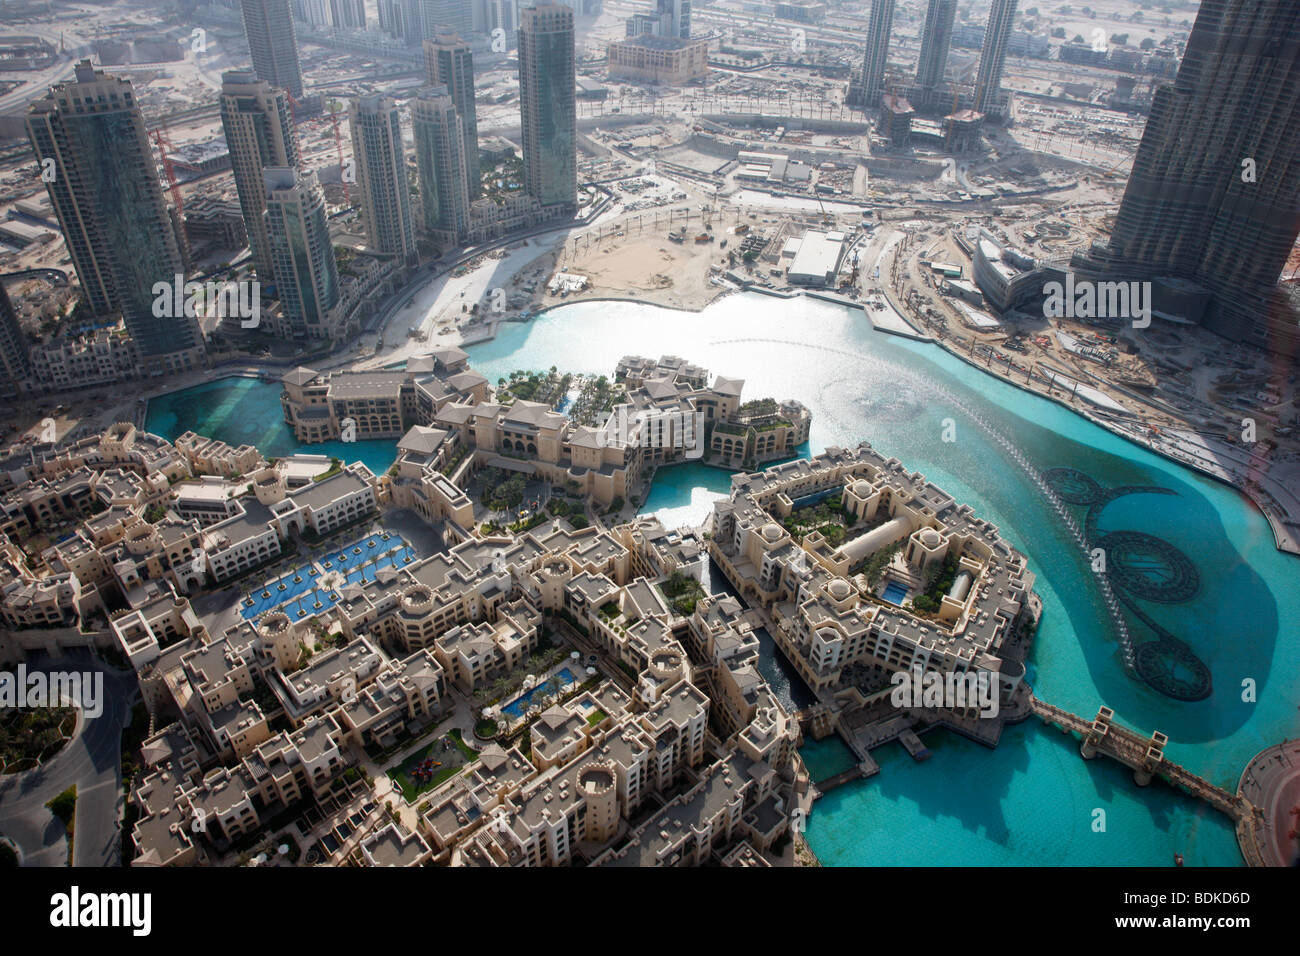 the palace hotel oldtown dubai luxury hotel in arabic style with stock photo 25628357 alamy. Black Bedroom Furniture Sets. Home Design Ideas